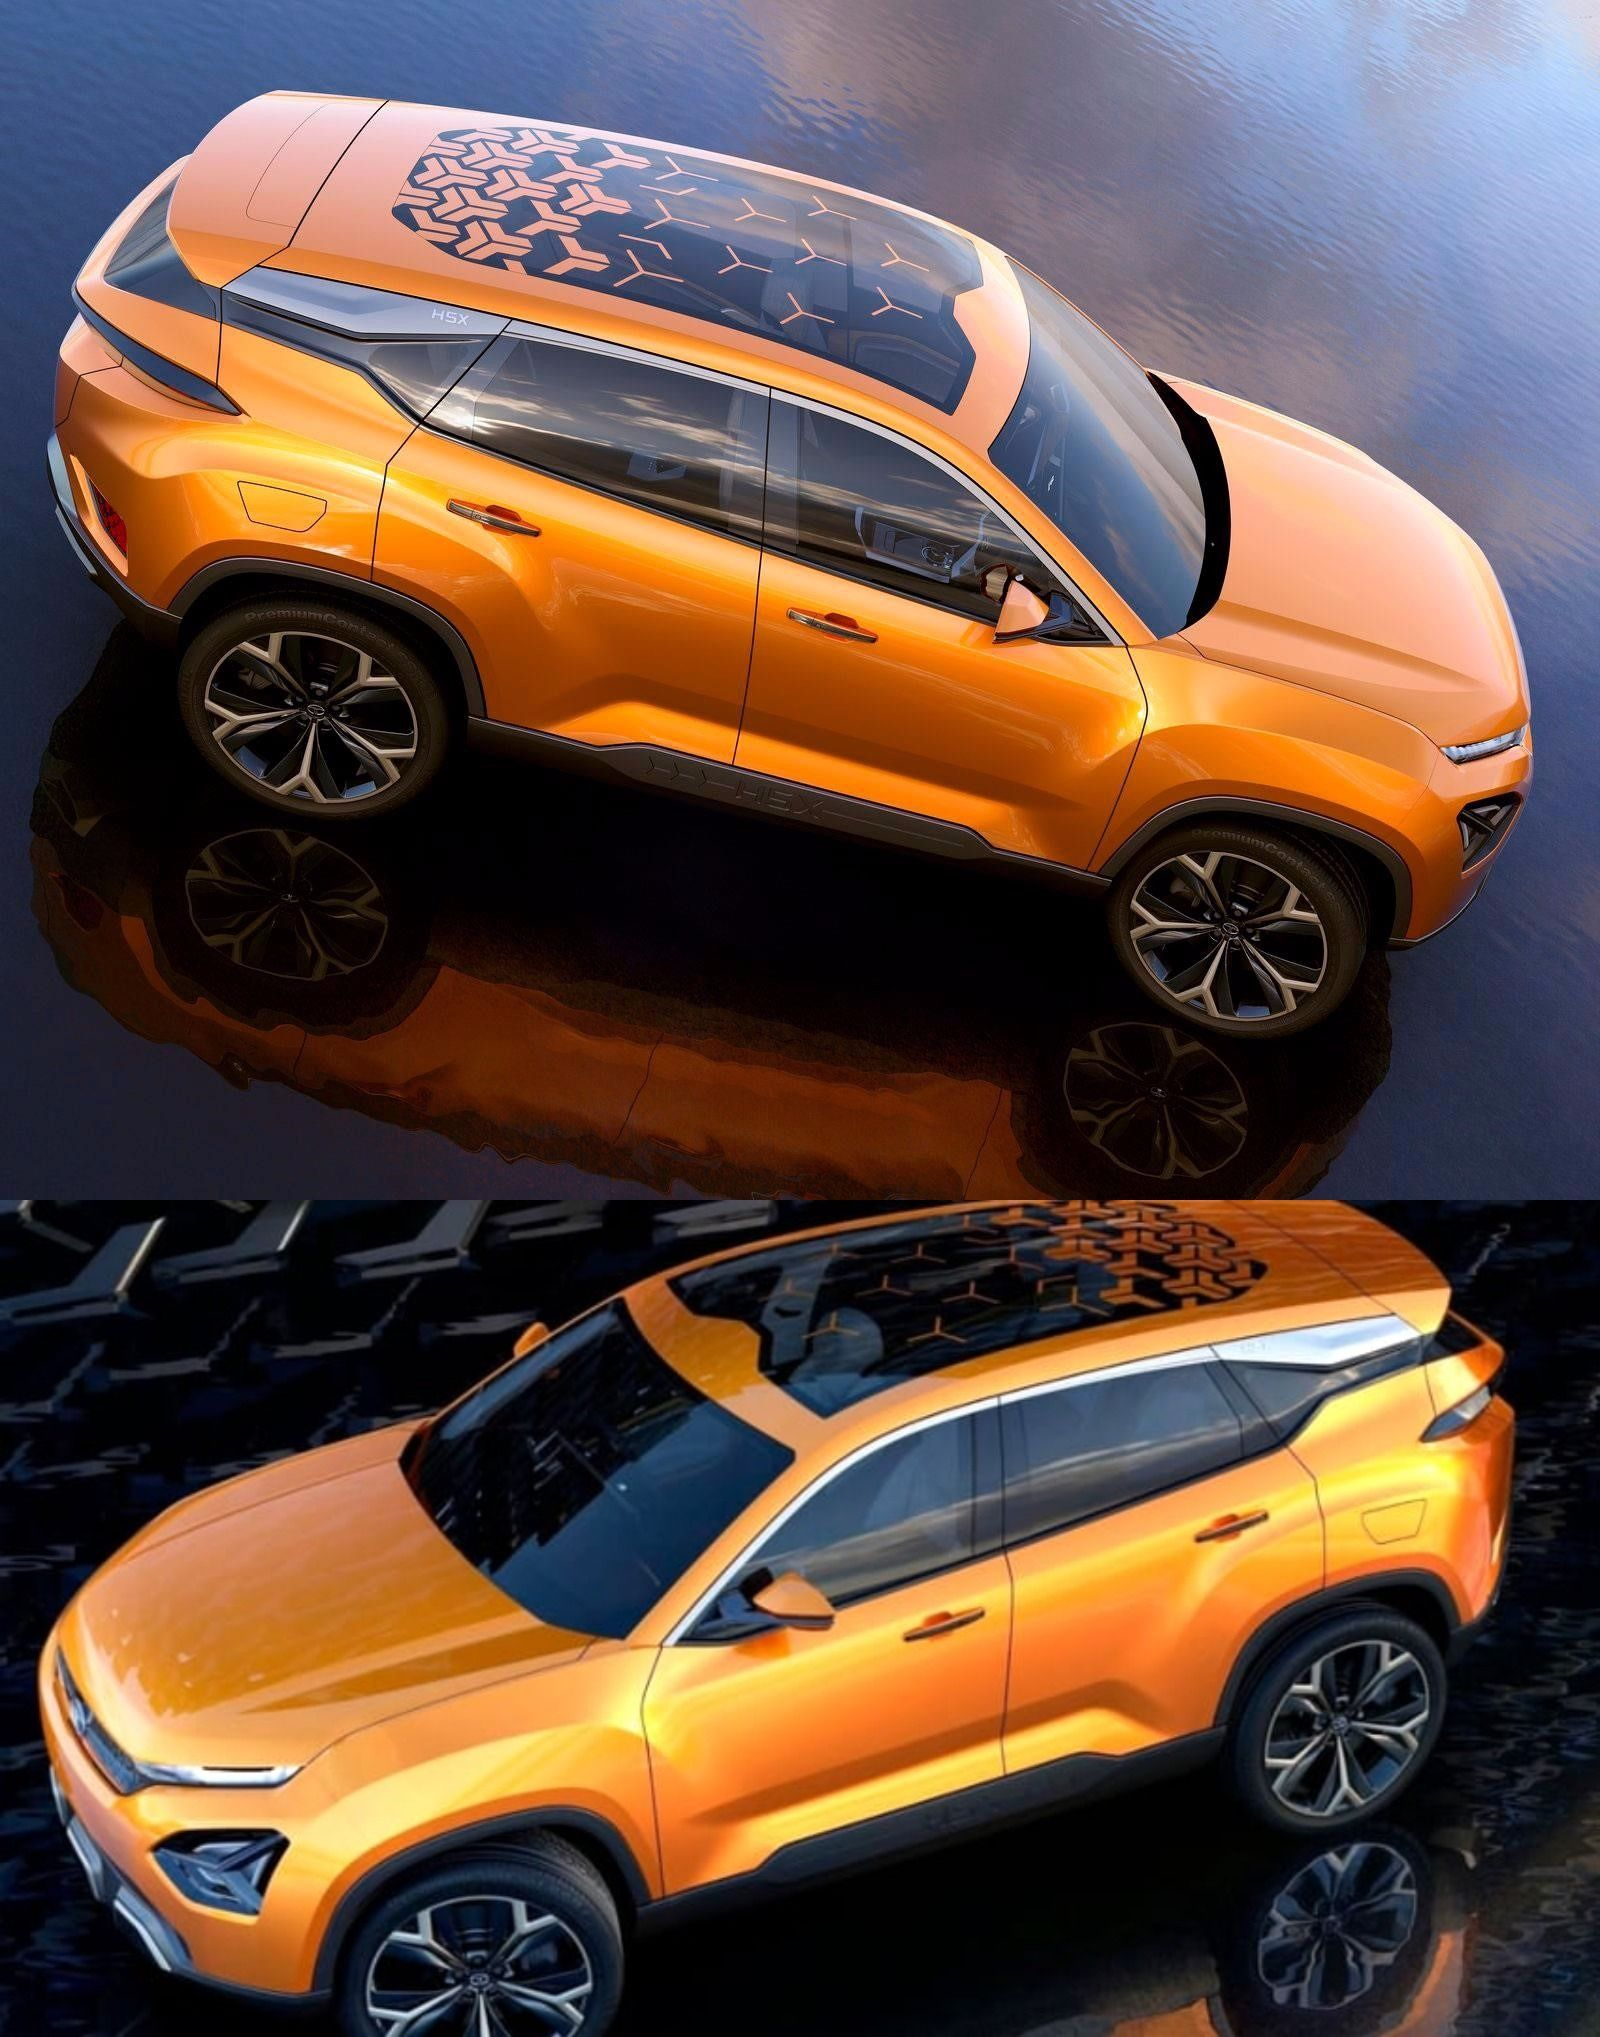 Tata H5x To Get Harrier As Market Name Tata Motors Concept Cars